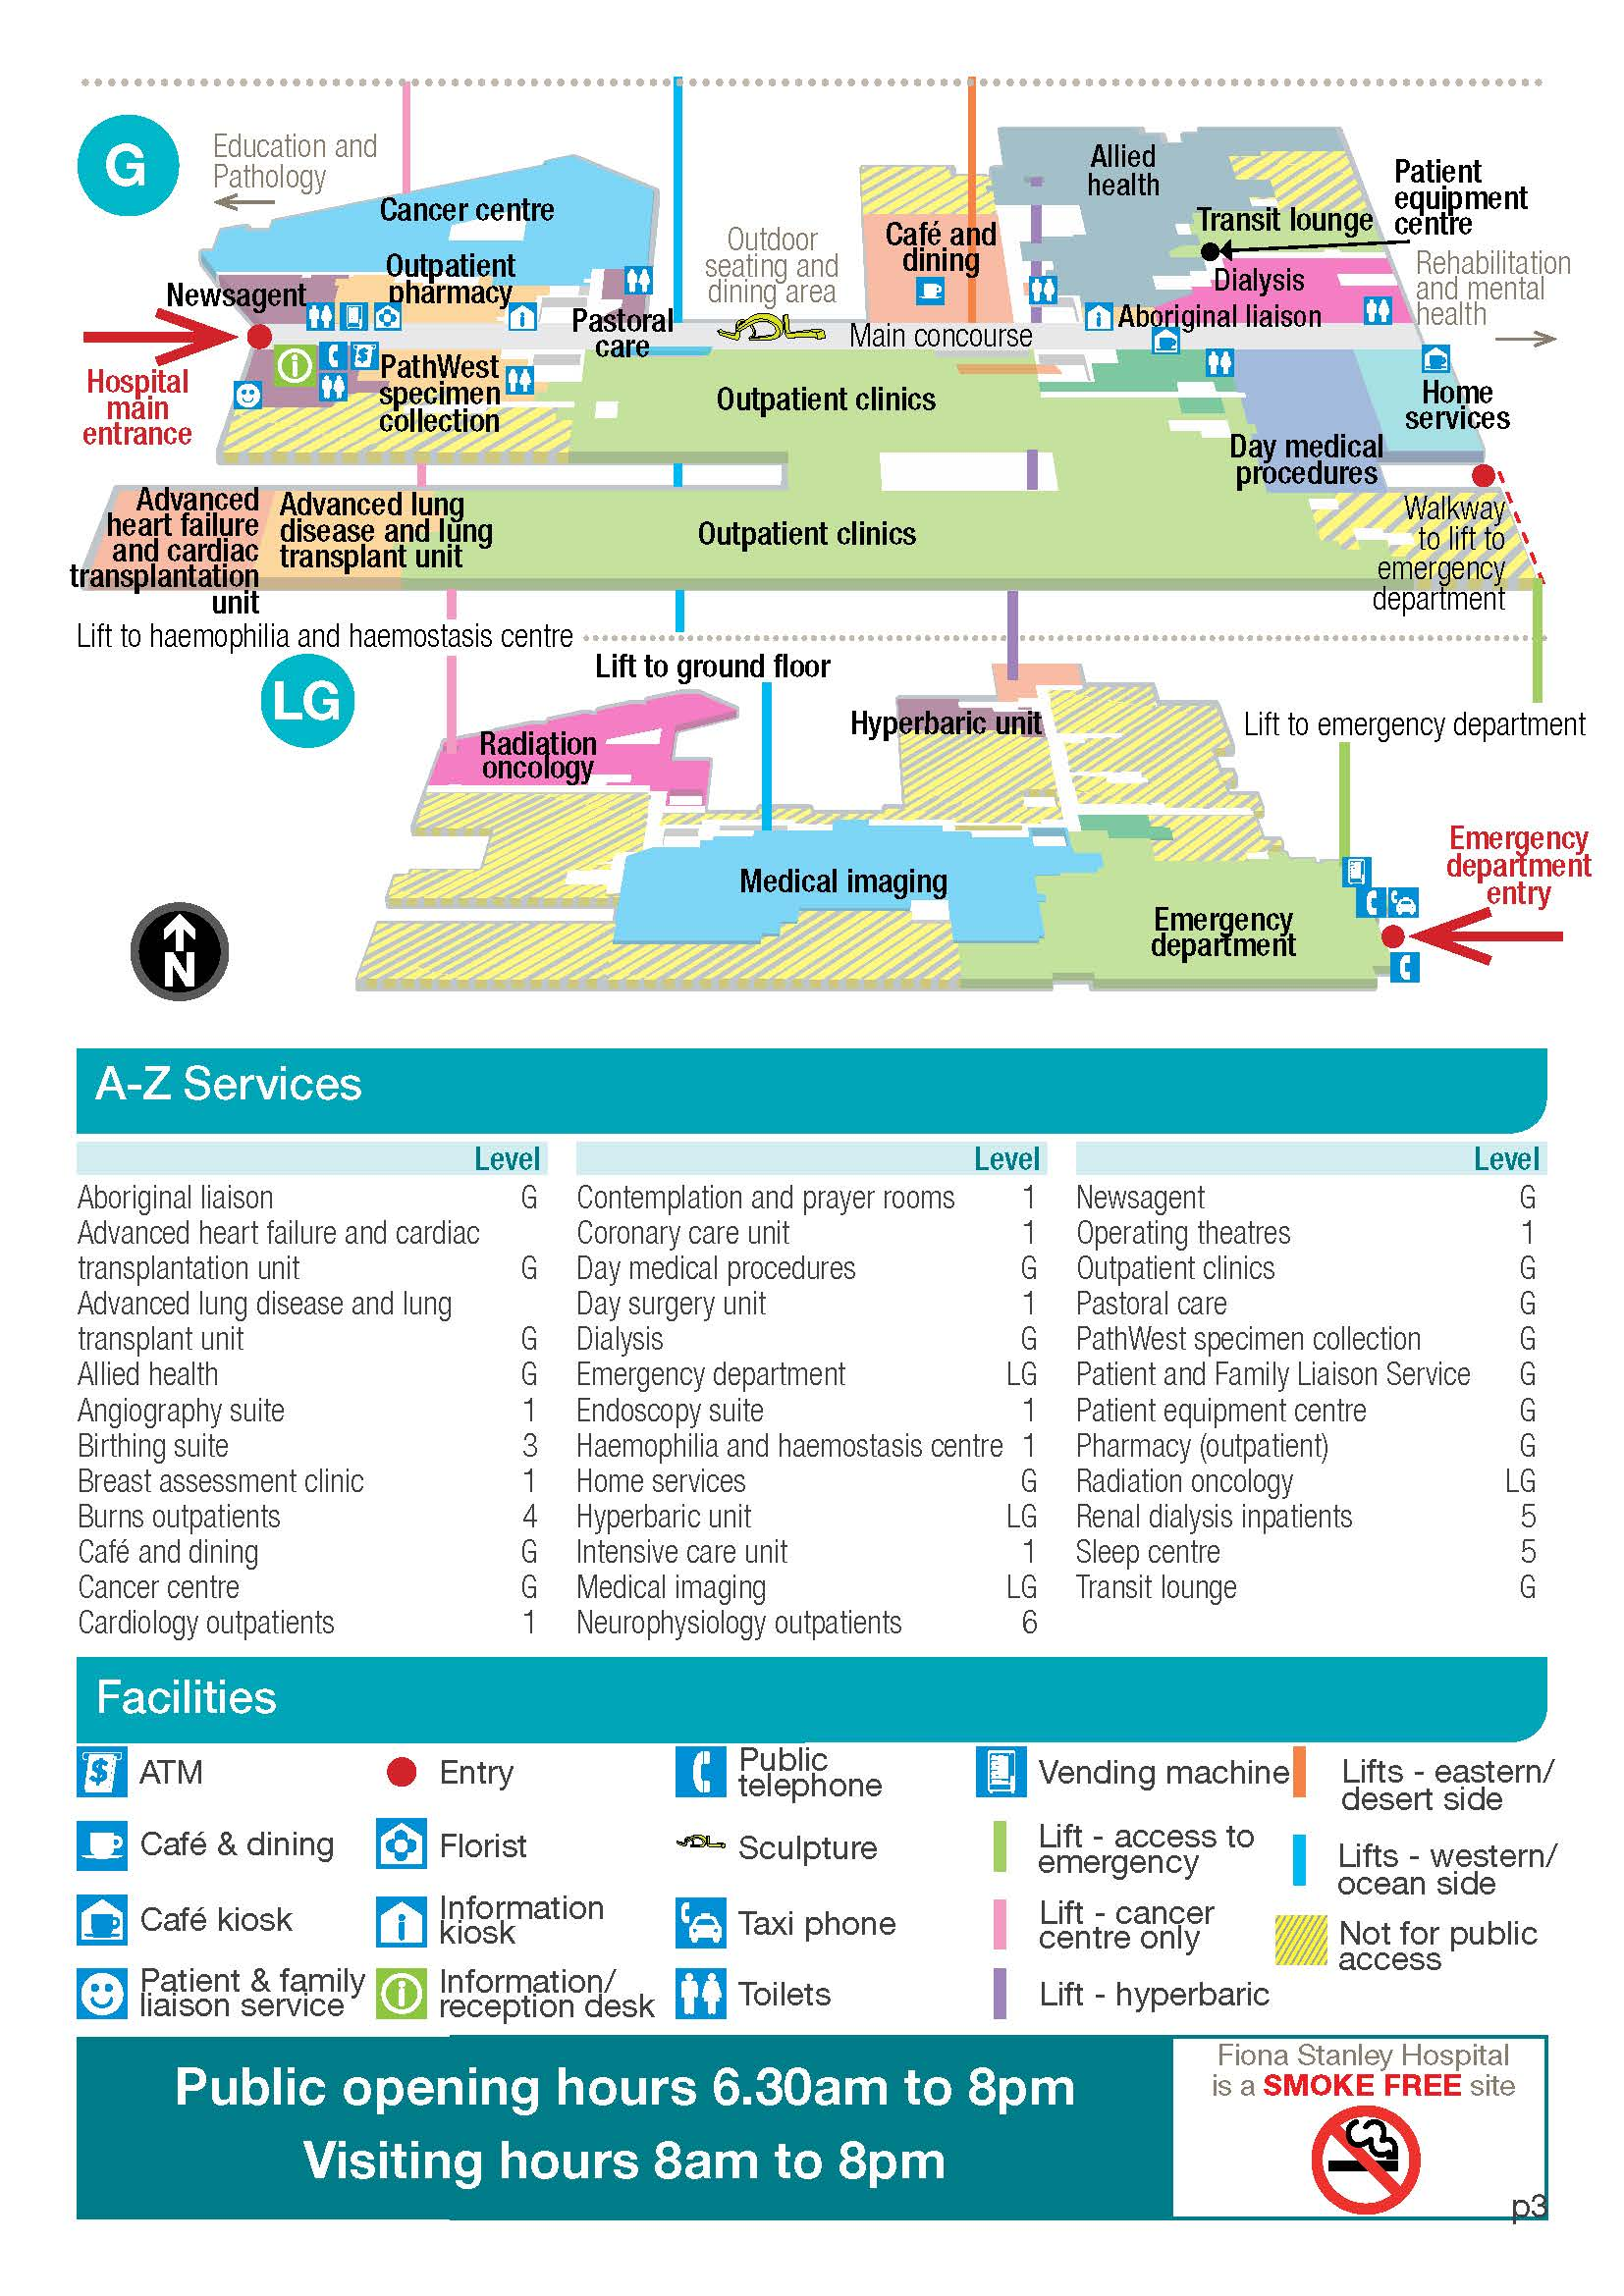 Map Of Arizona Hospitals.Fiona Stanley Hospital A To Z Services Map